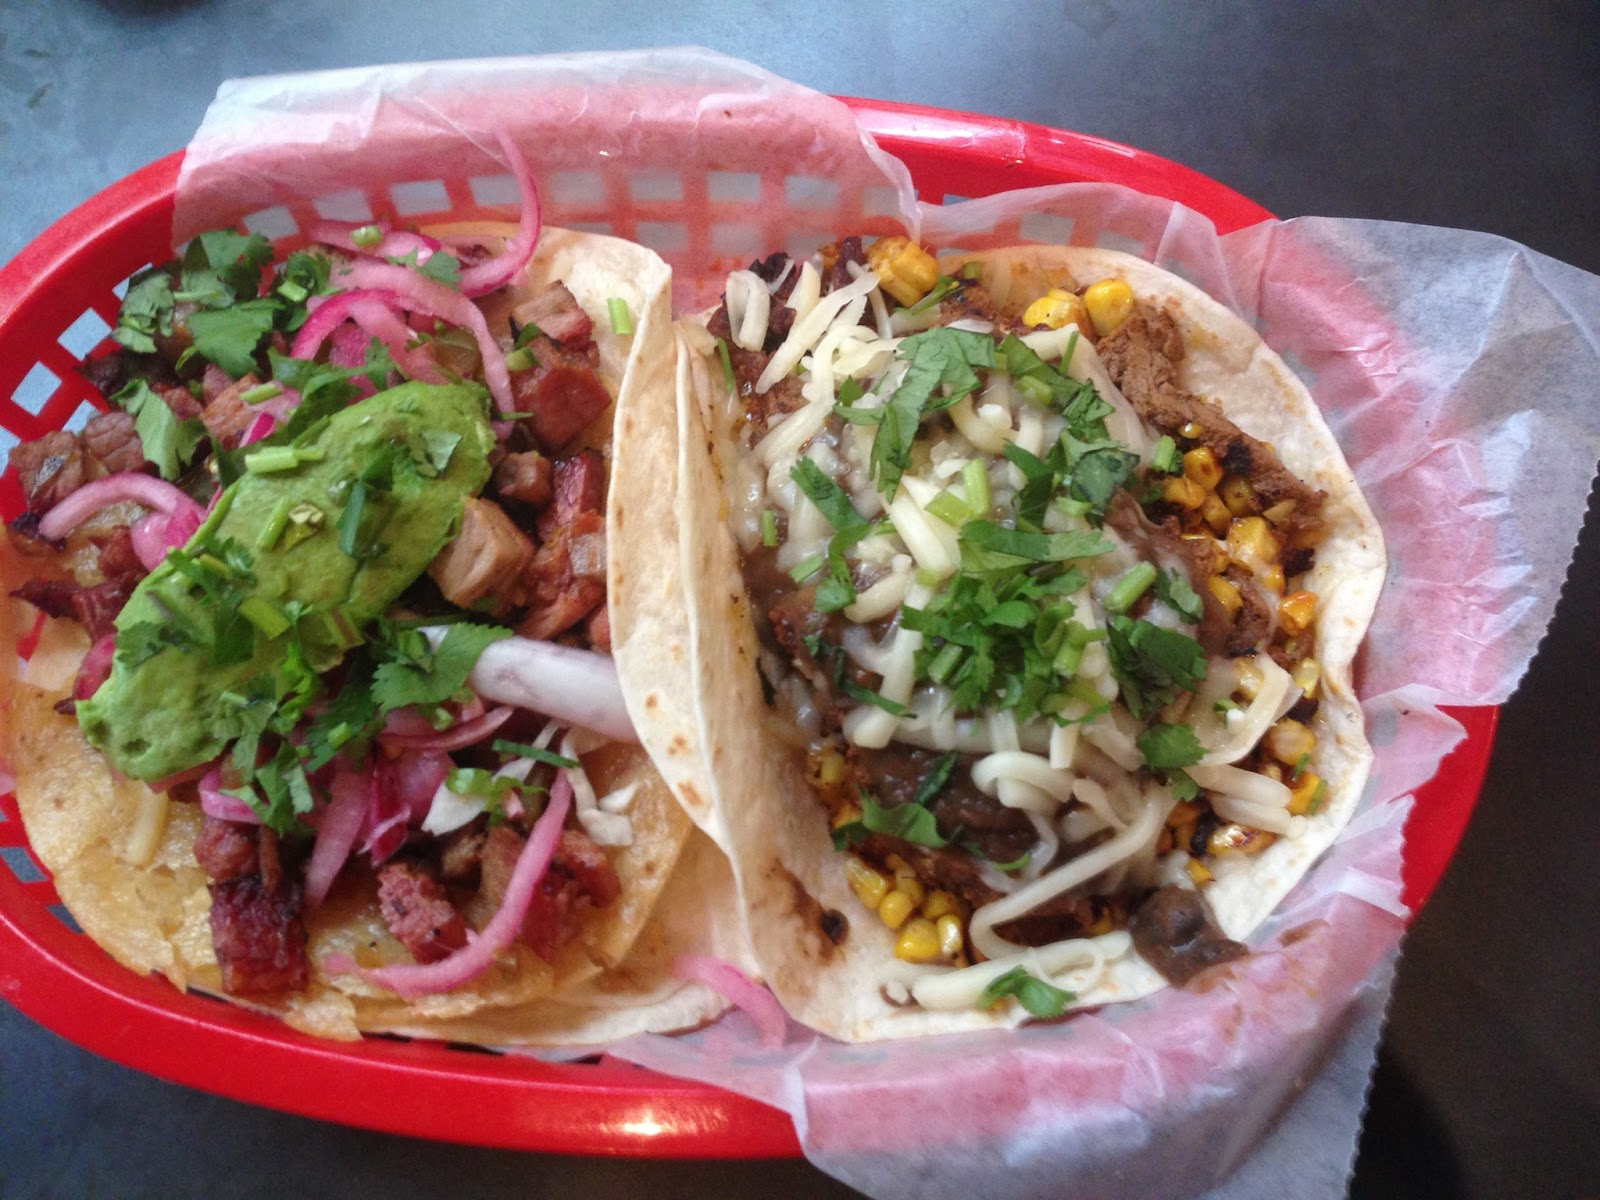 torchy's tacos: the secret menu | the avocado apex